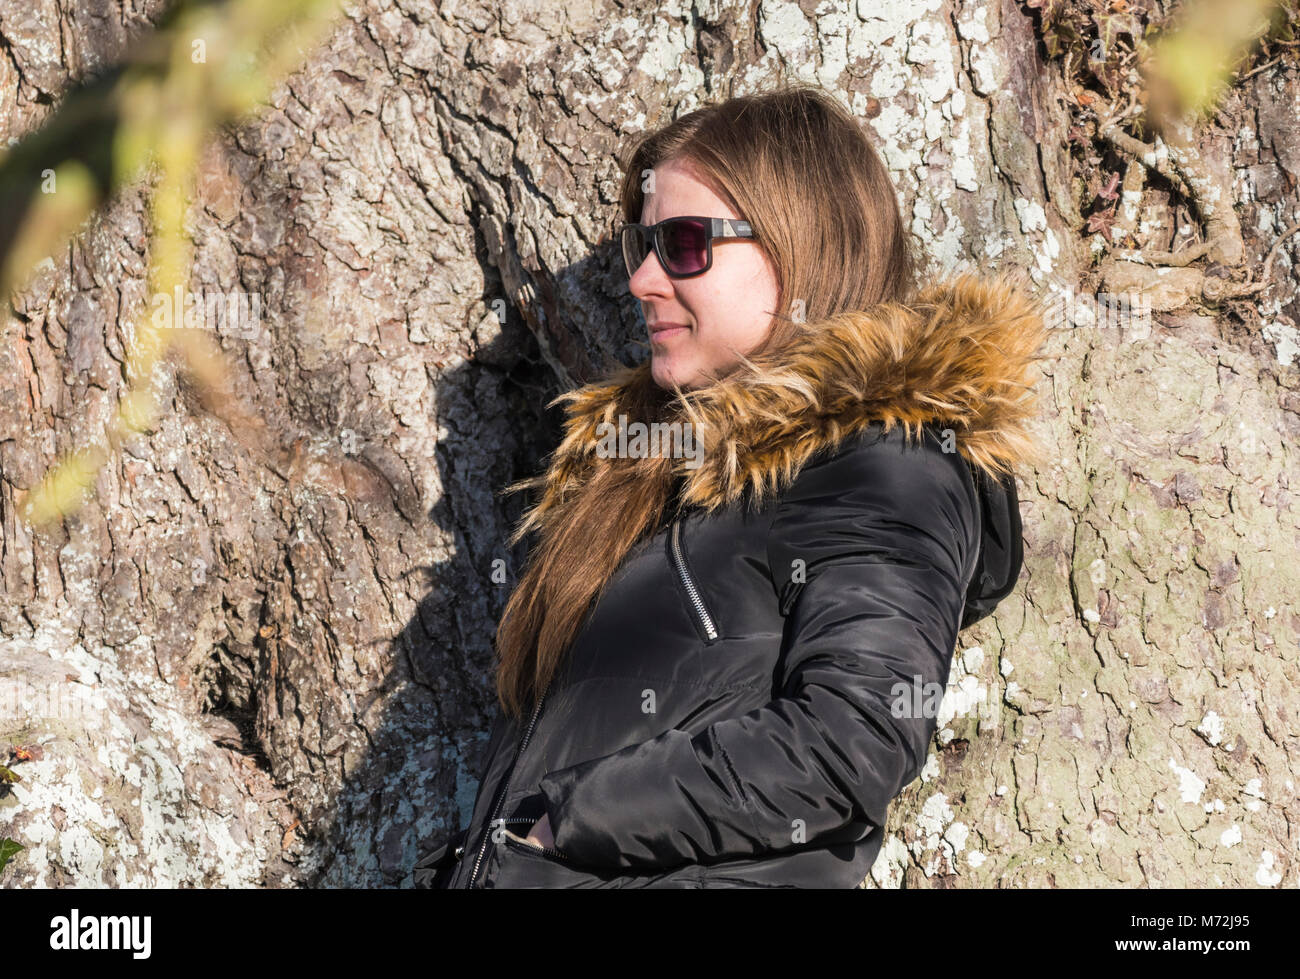 Pretty young woman posing by a tree outside in Winter having her photo taken. - Stock Image